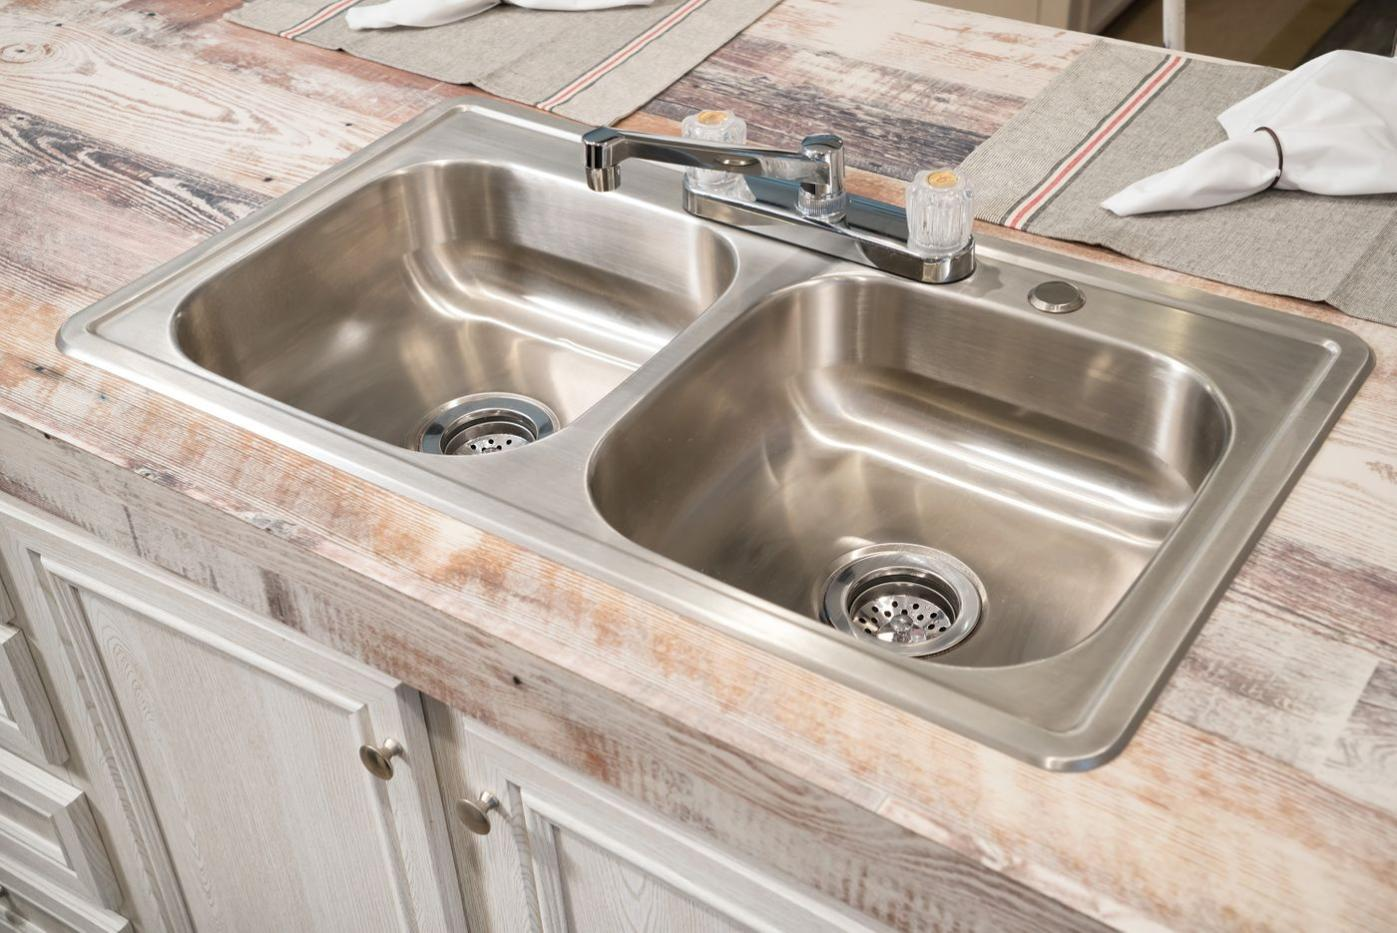 Sinks in the Edge Manufactured Home from Worldwide Mobile Homes in Lumberton, Texas